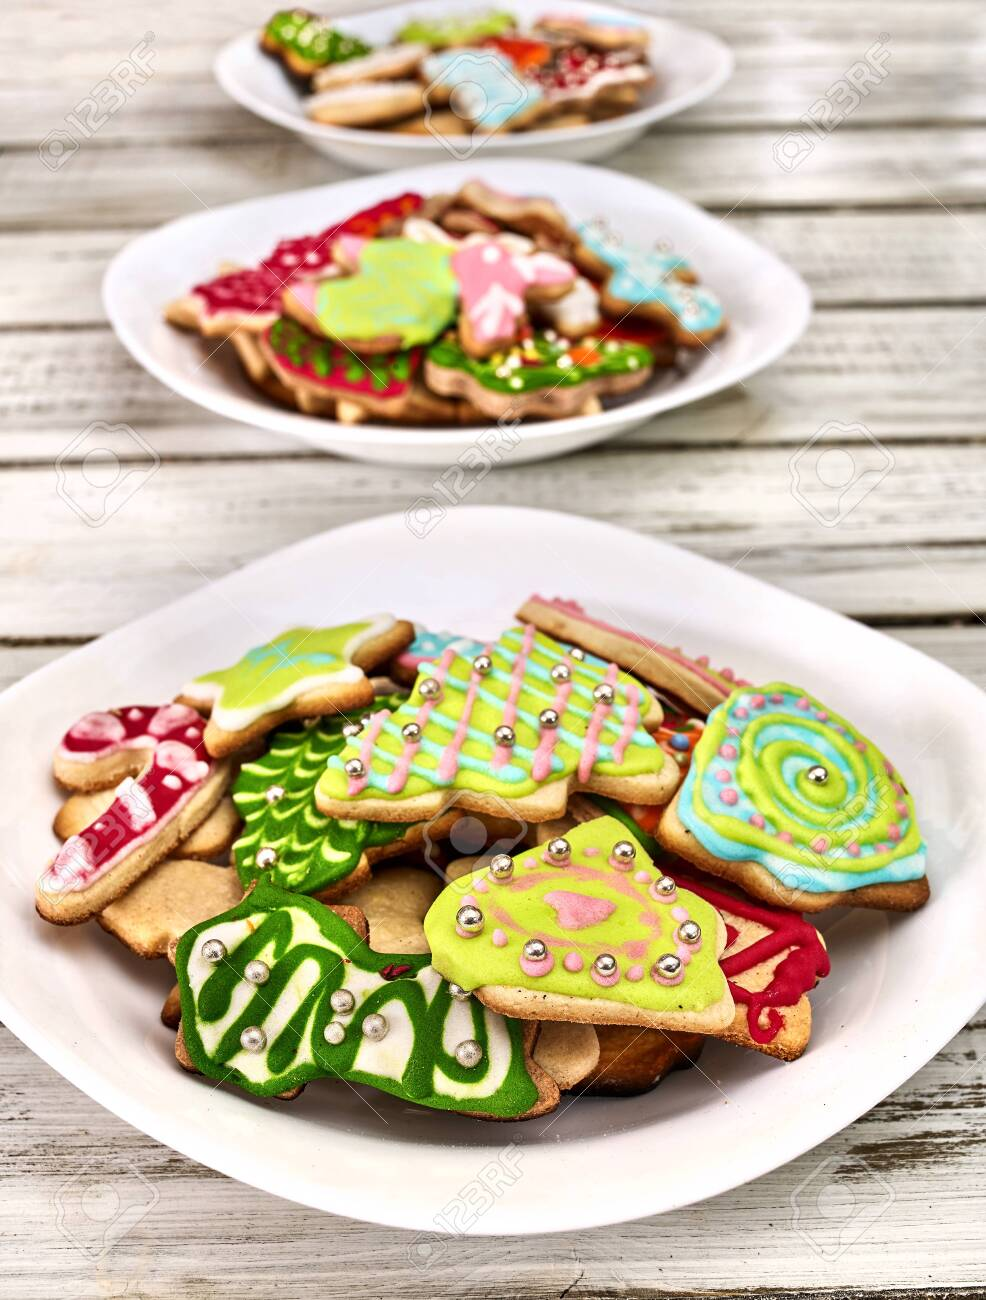 Christmas gingerbread cookies on three plates by white wooden table . Top view long vertical design frame. - 133940075